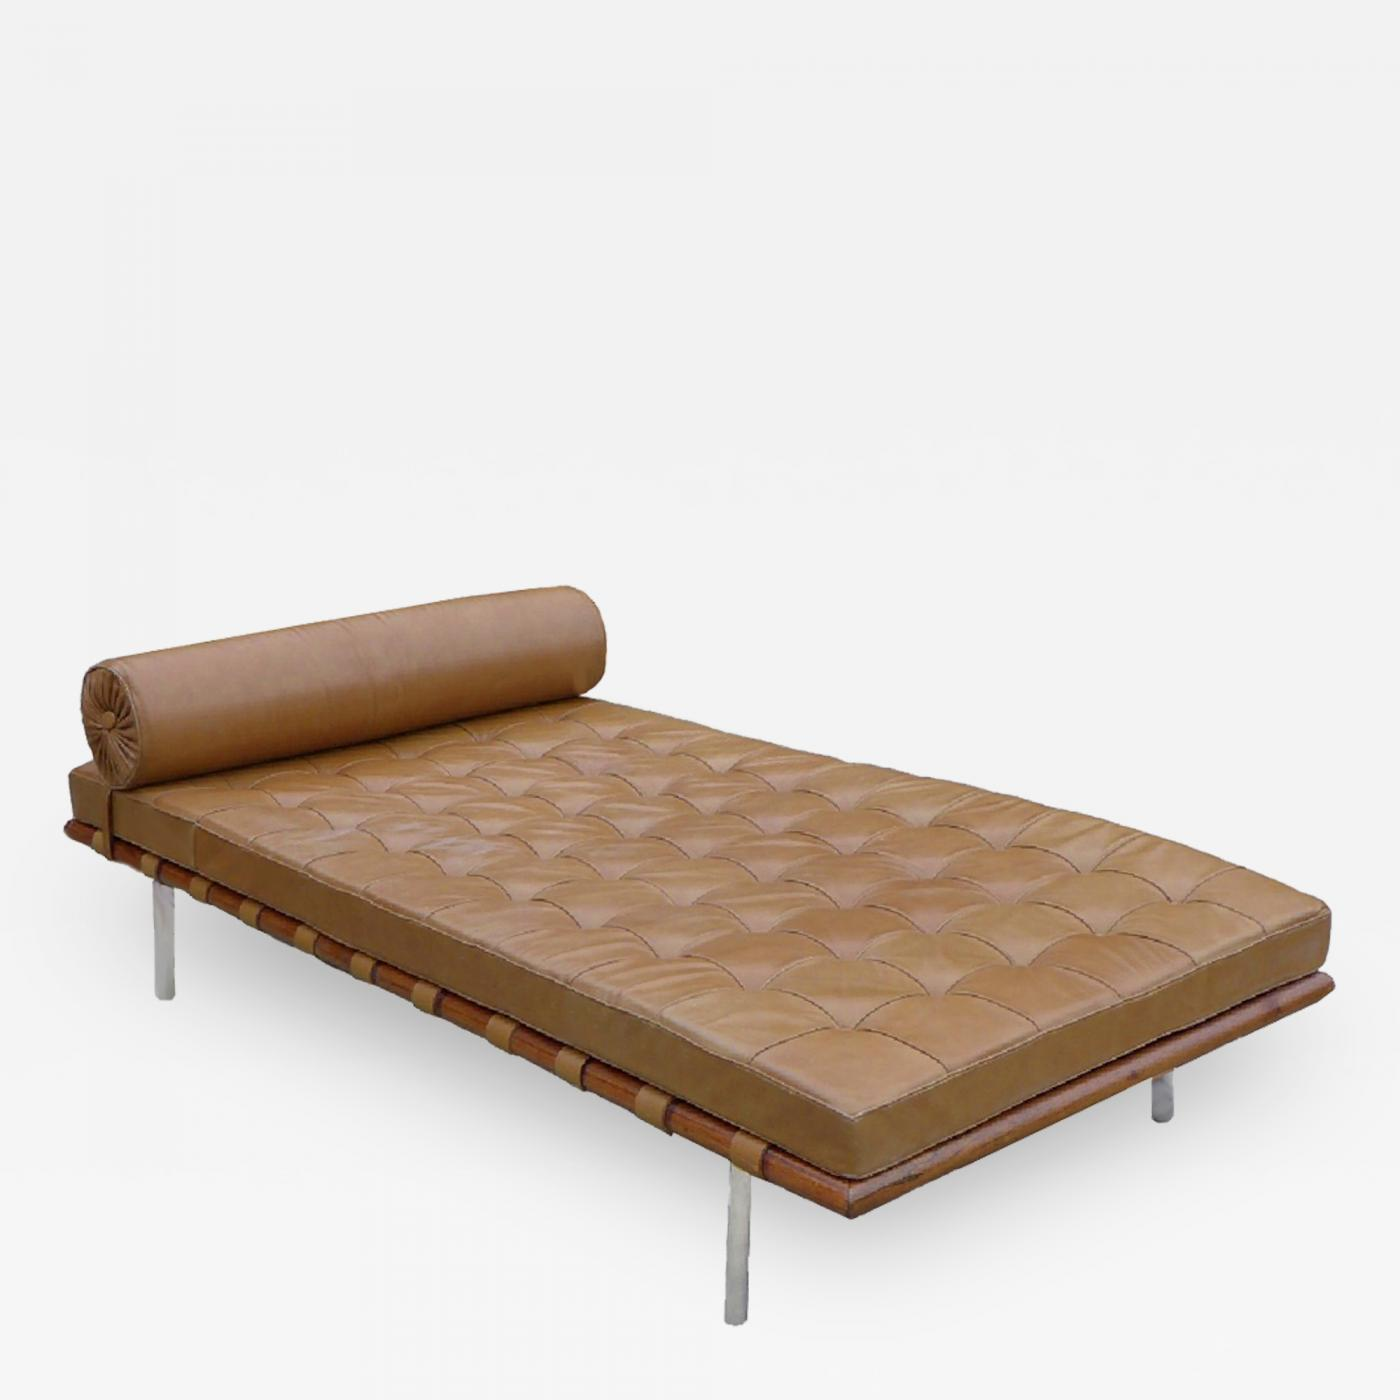 Barcelona Daybed Mies Van Der Rohe Knoll Tan Leather Rosewood Barcelona